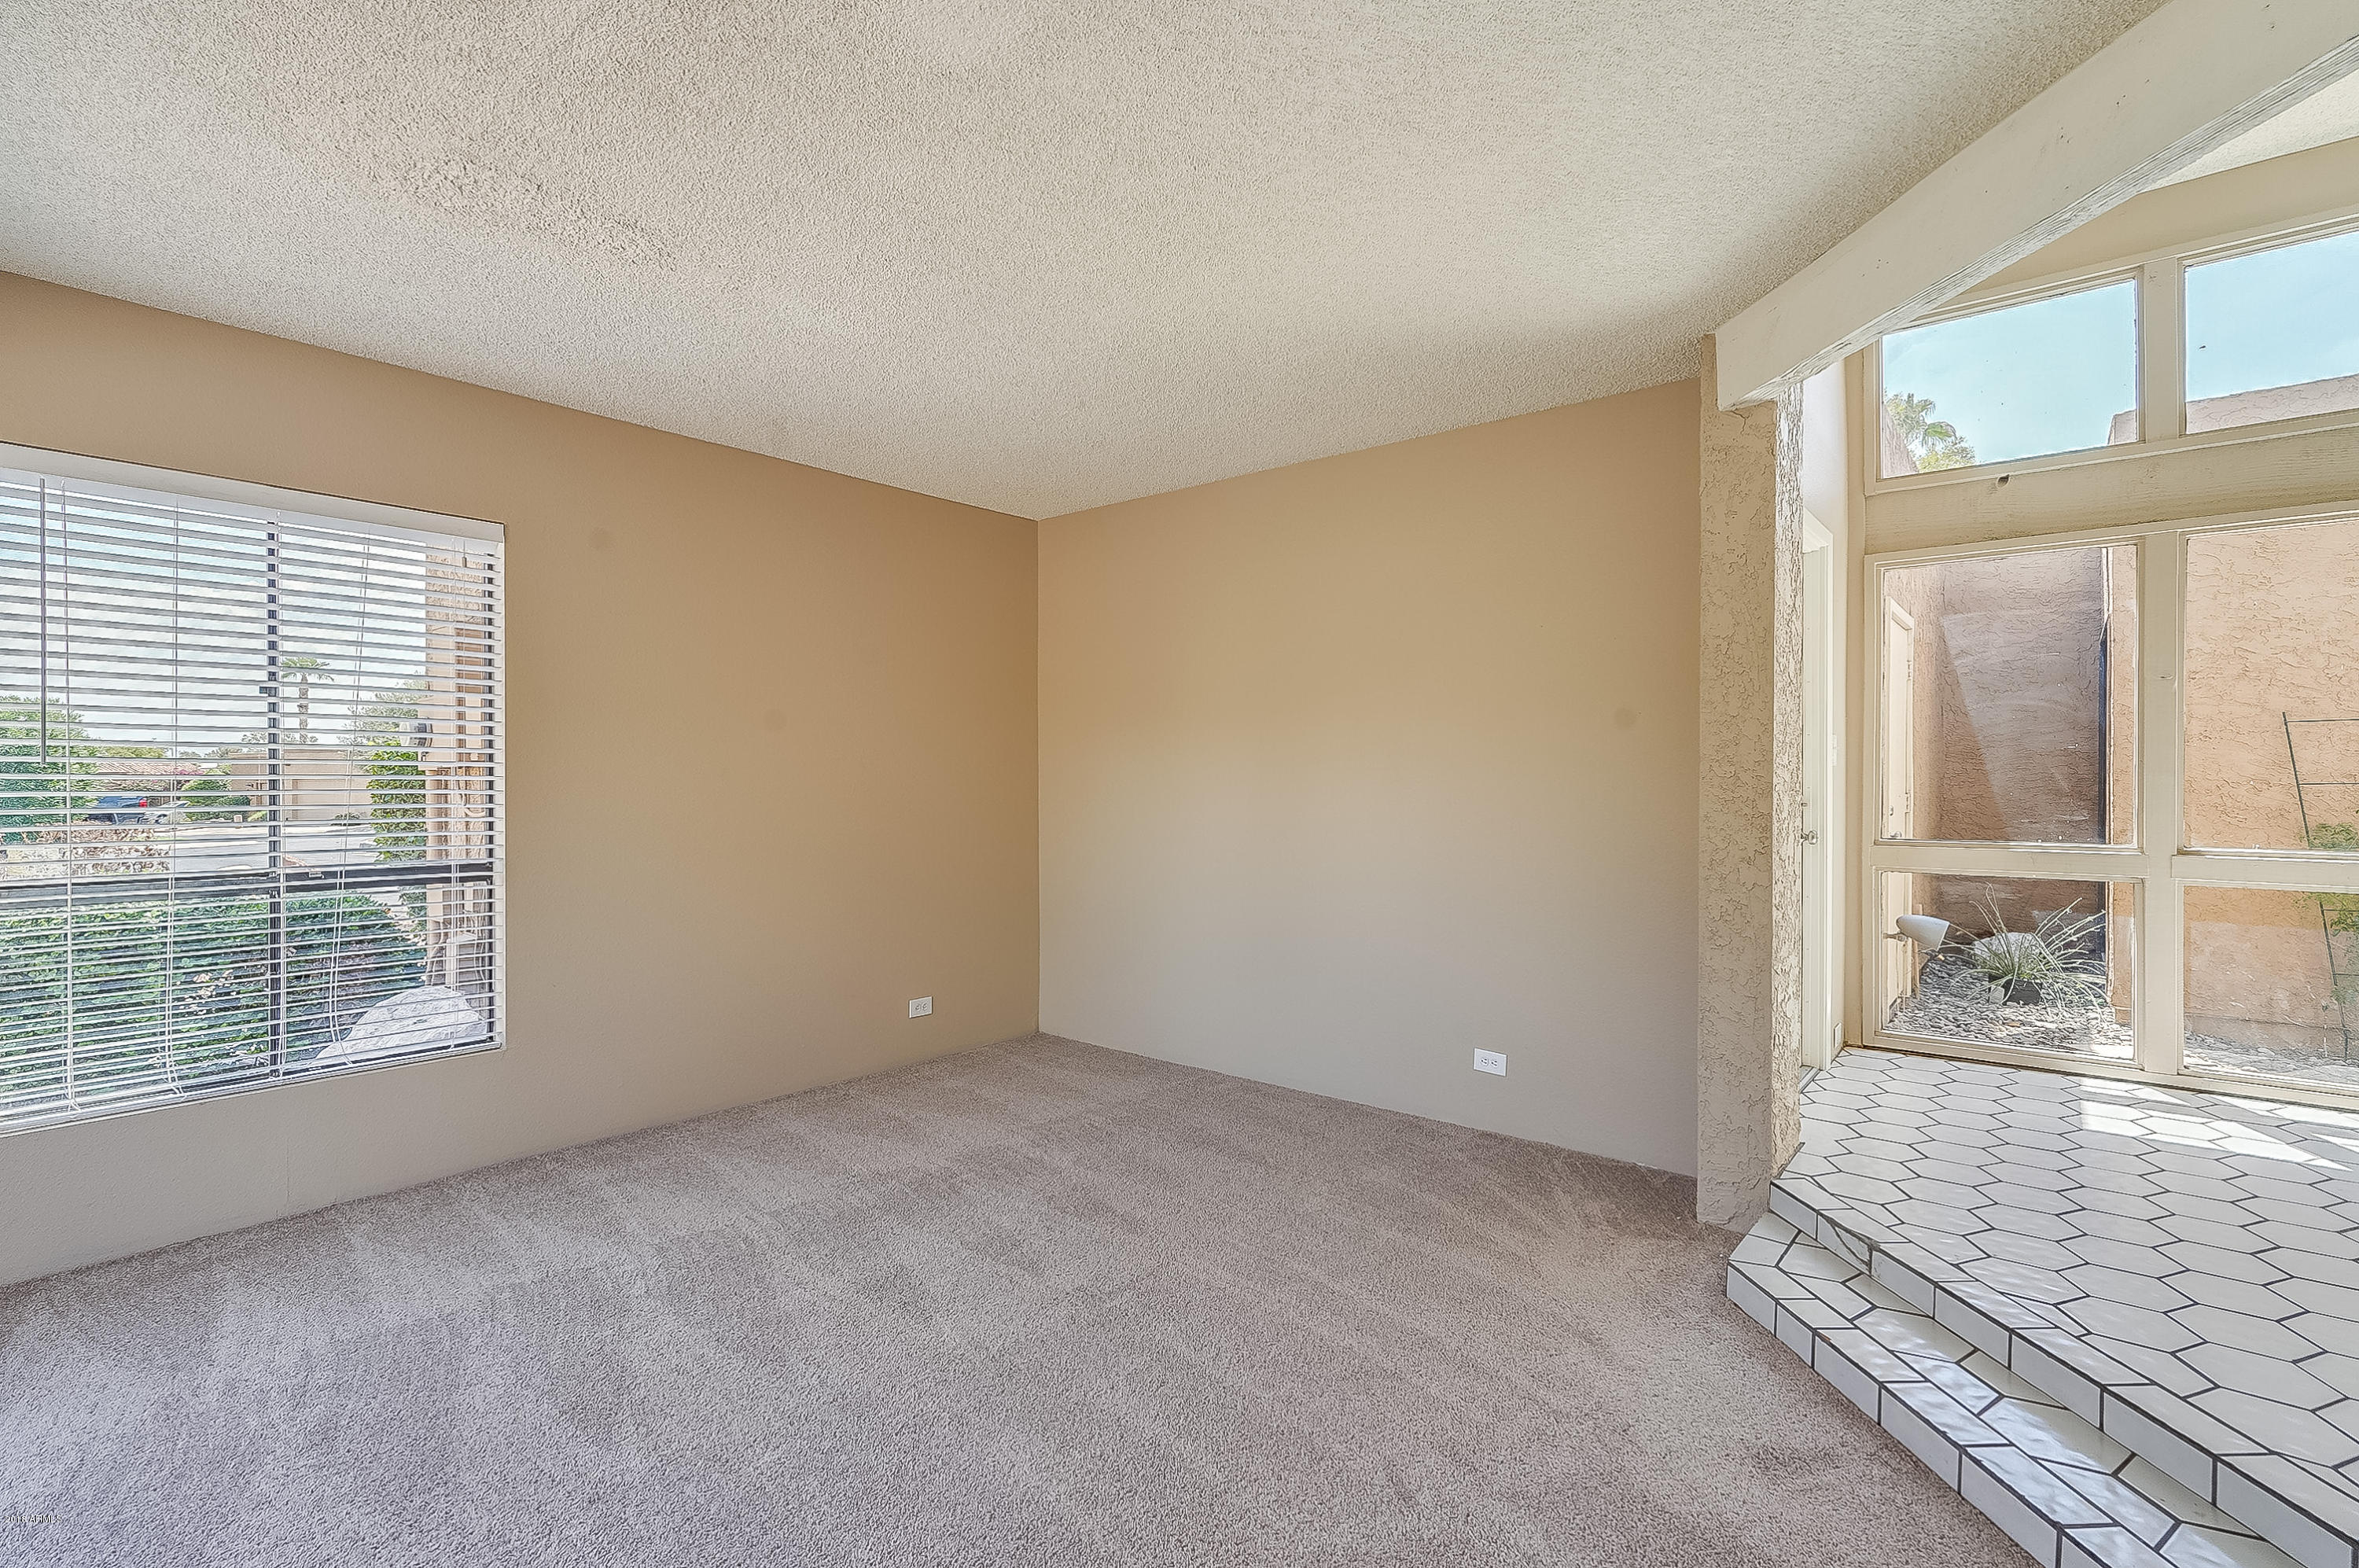 10649 N 11TH Street Phoenix, AZ 85020 - MLS #: 5811514